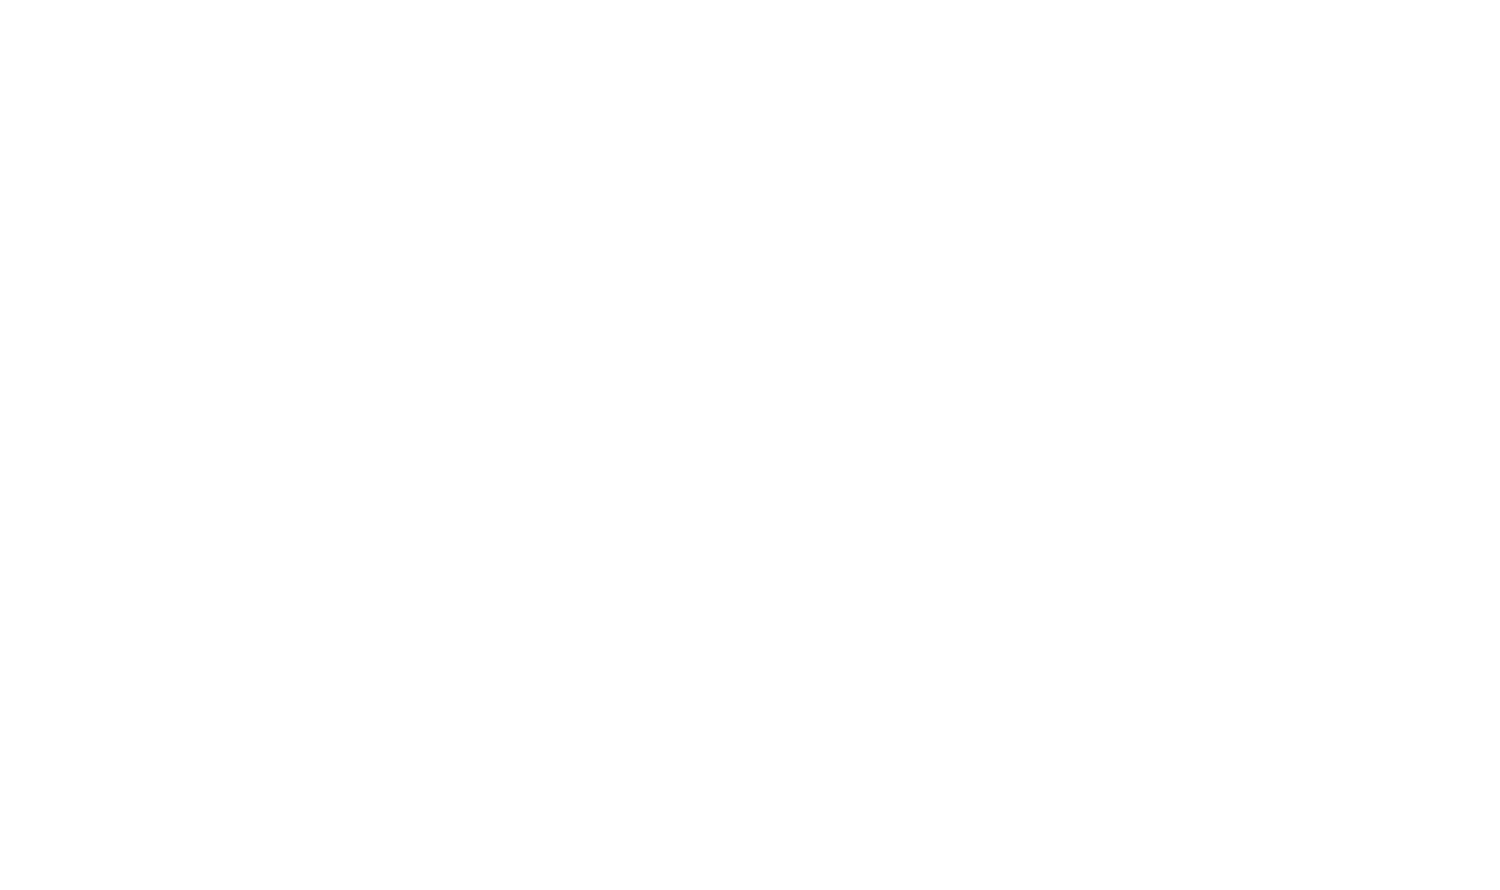 CasinoSoft.